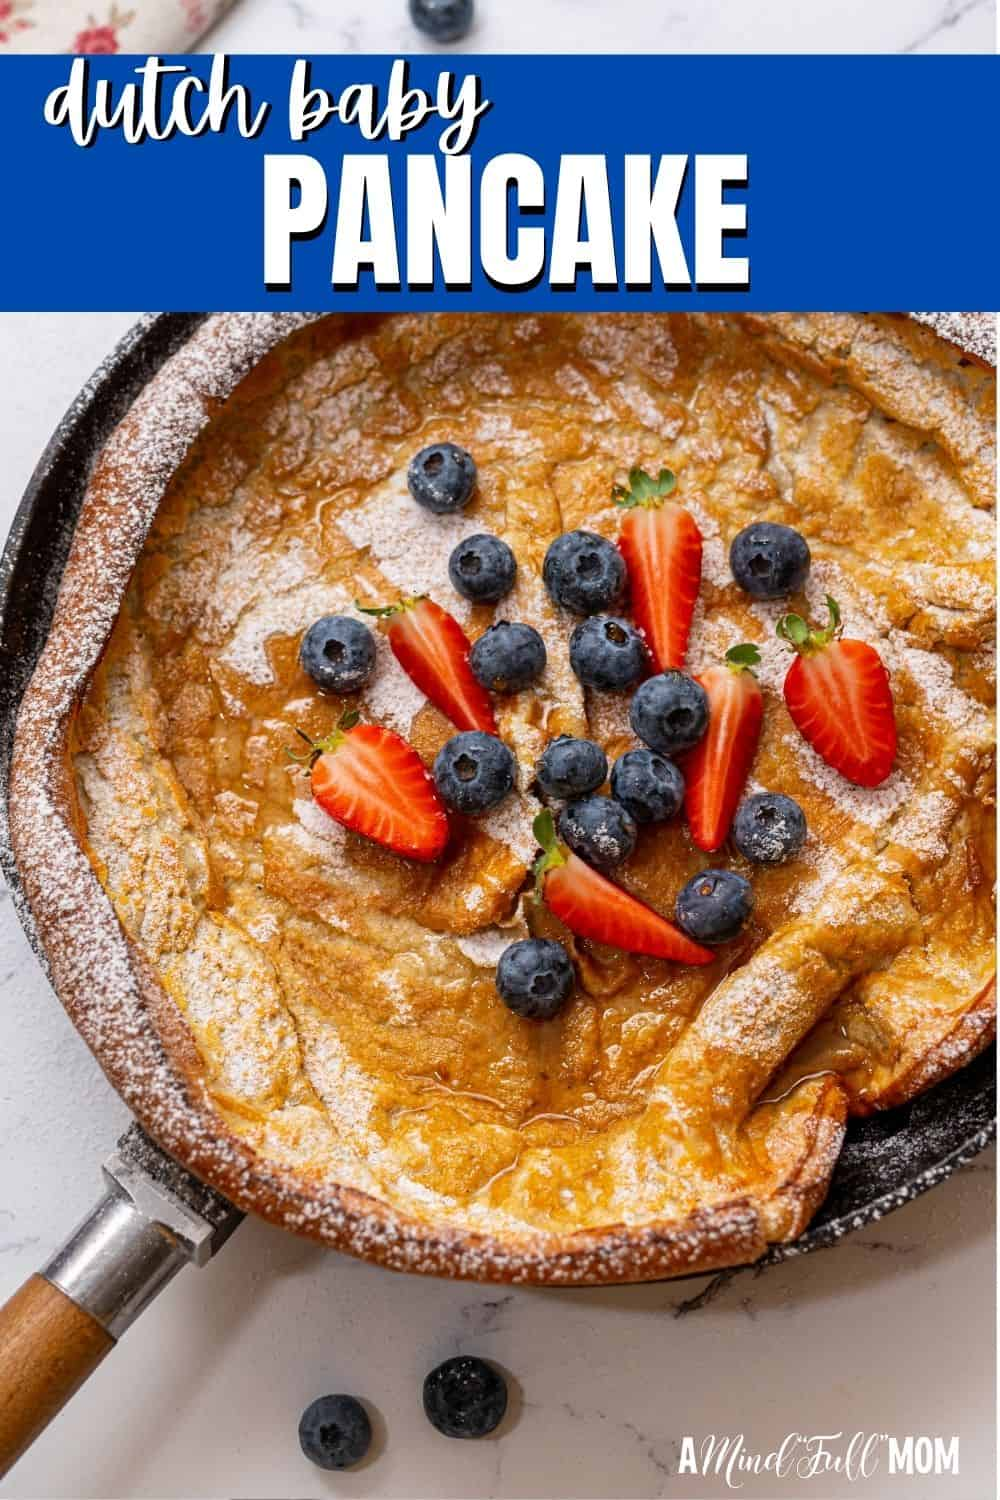 Baked in the oven, Dutch Baby Pancakes are a delicious spin on pancakes. This oven-baked pancake is made with an eggy, light batter and crisps up around the edges while magically puffing up in the middle for a delicious, buttery pancake!